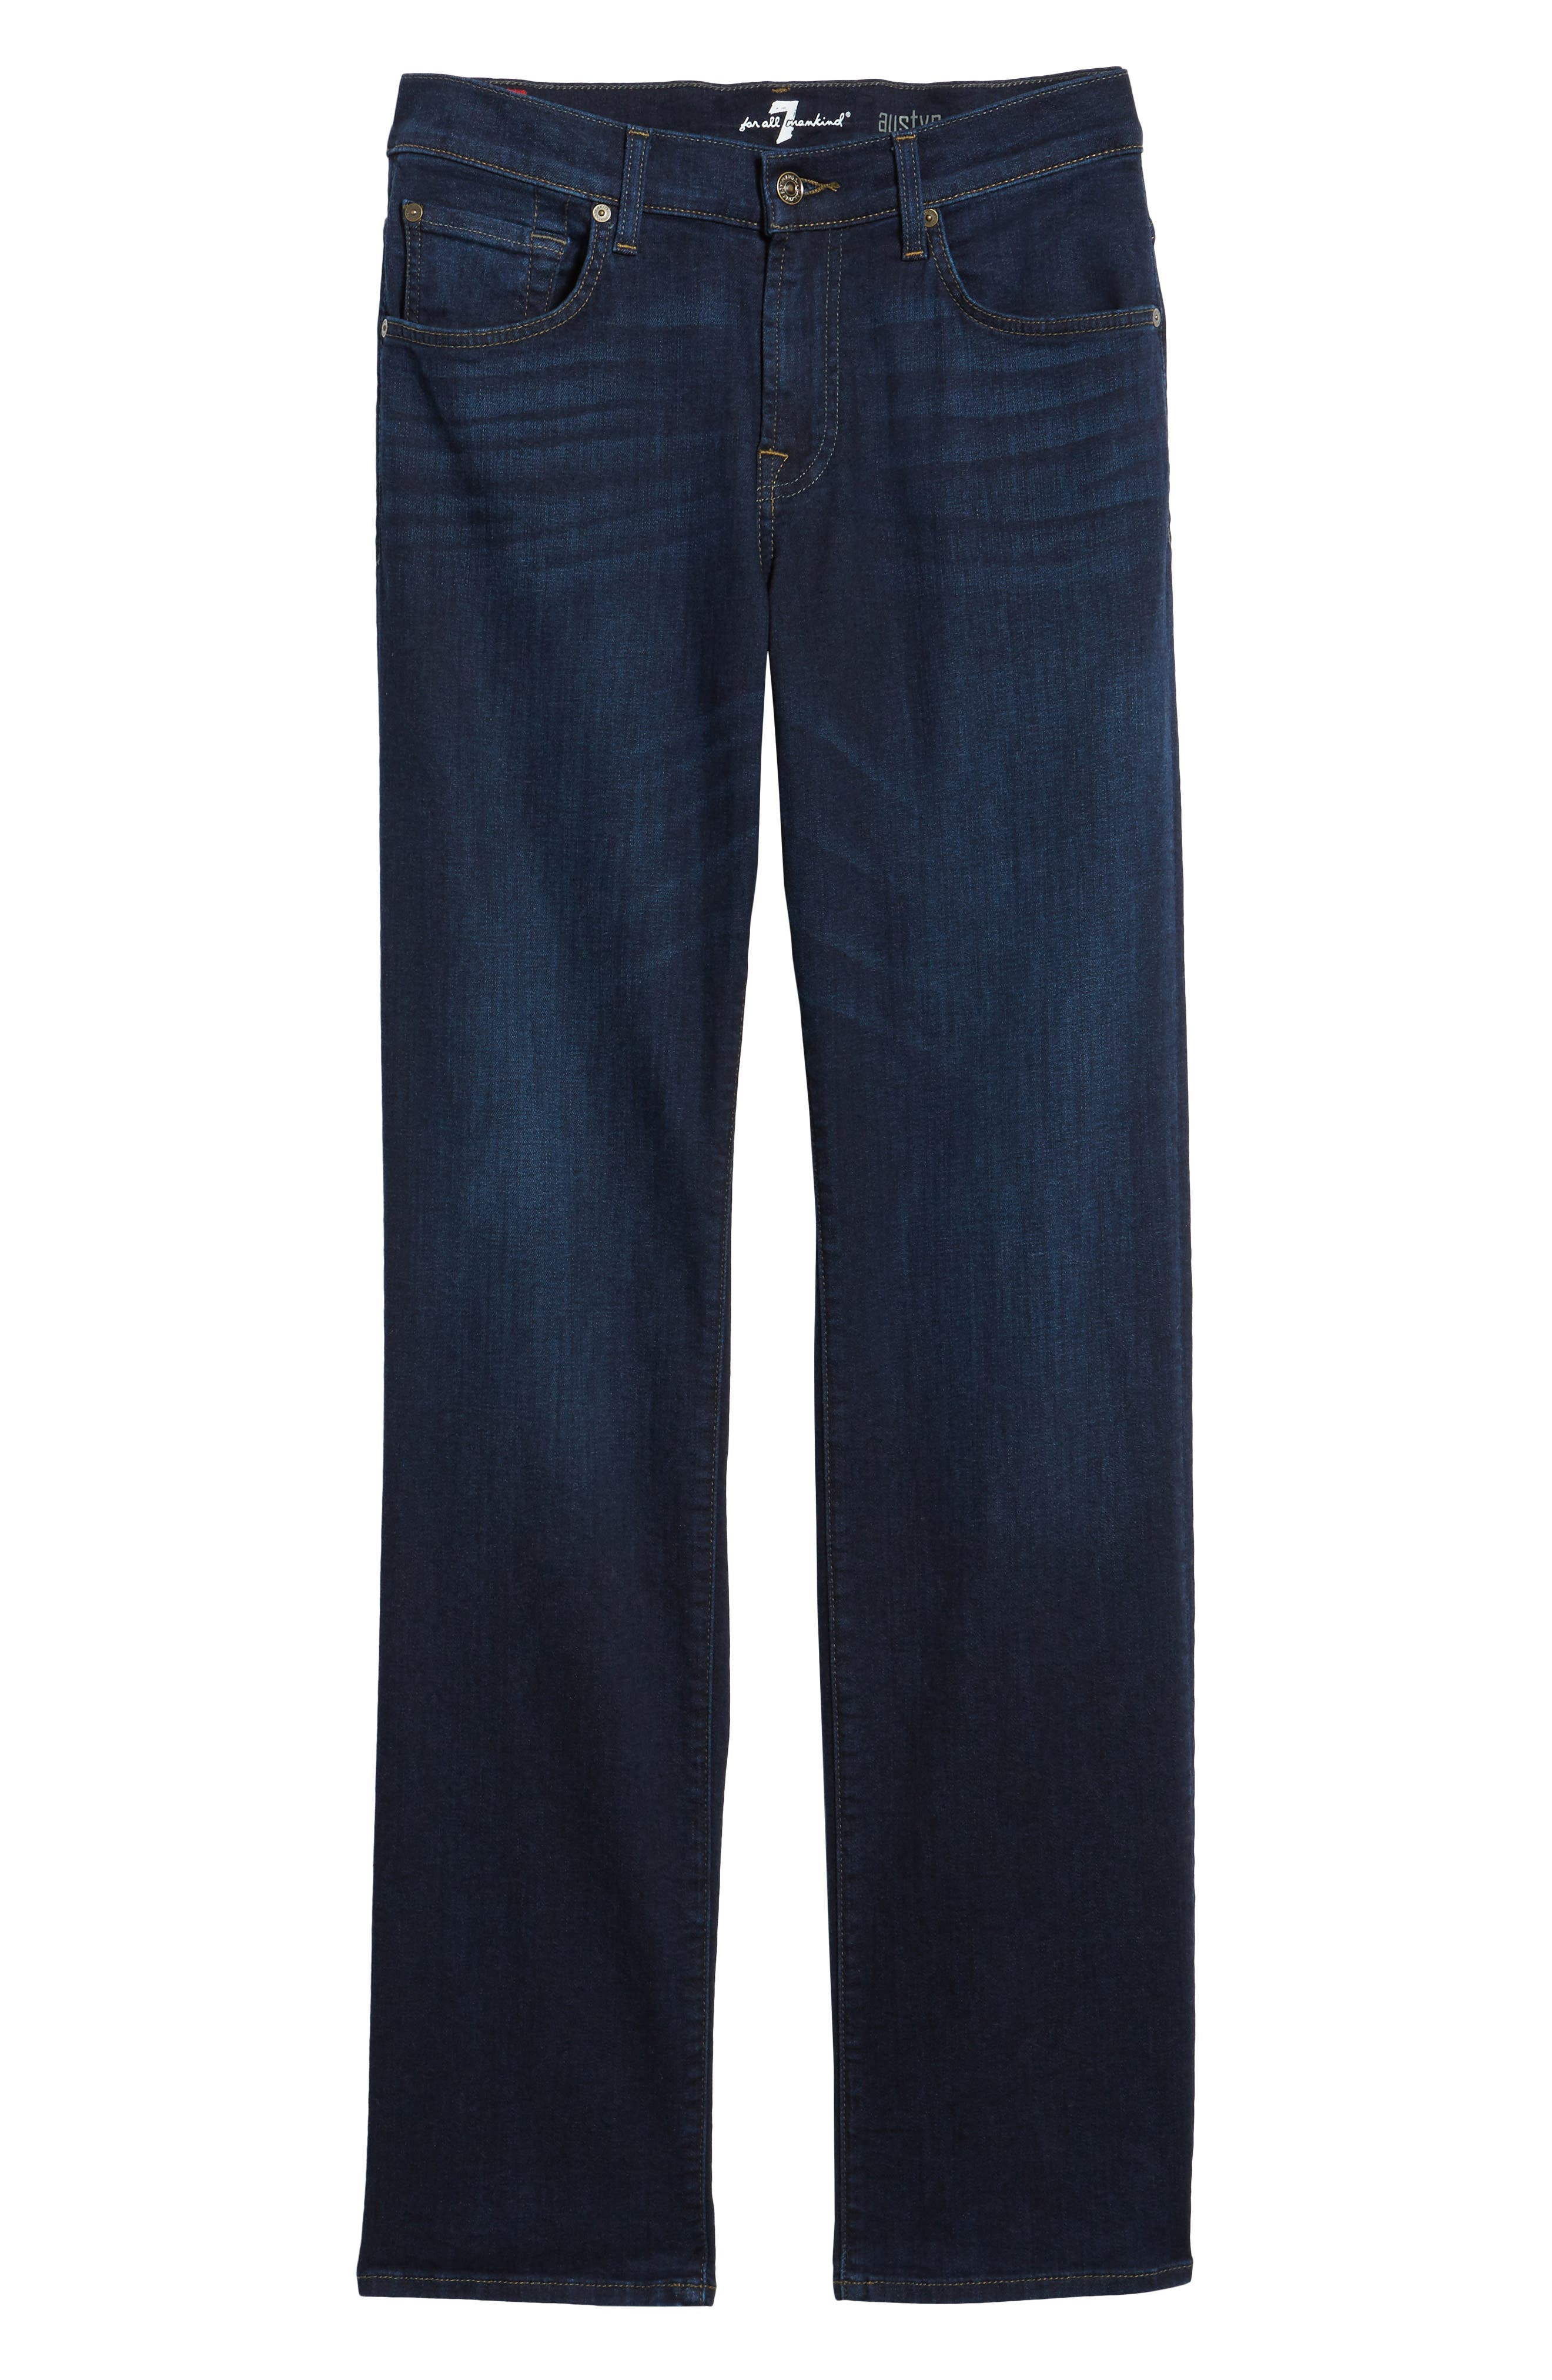 Austyn Relaxed Fit Jeans,                             Alternate thumbnail 6, color,                             After Hours